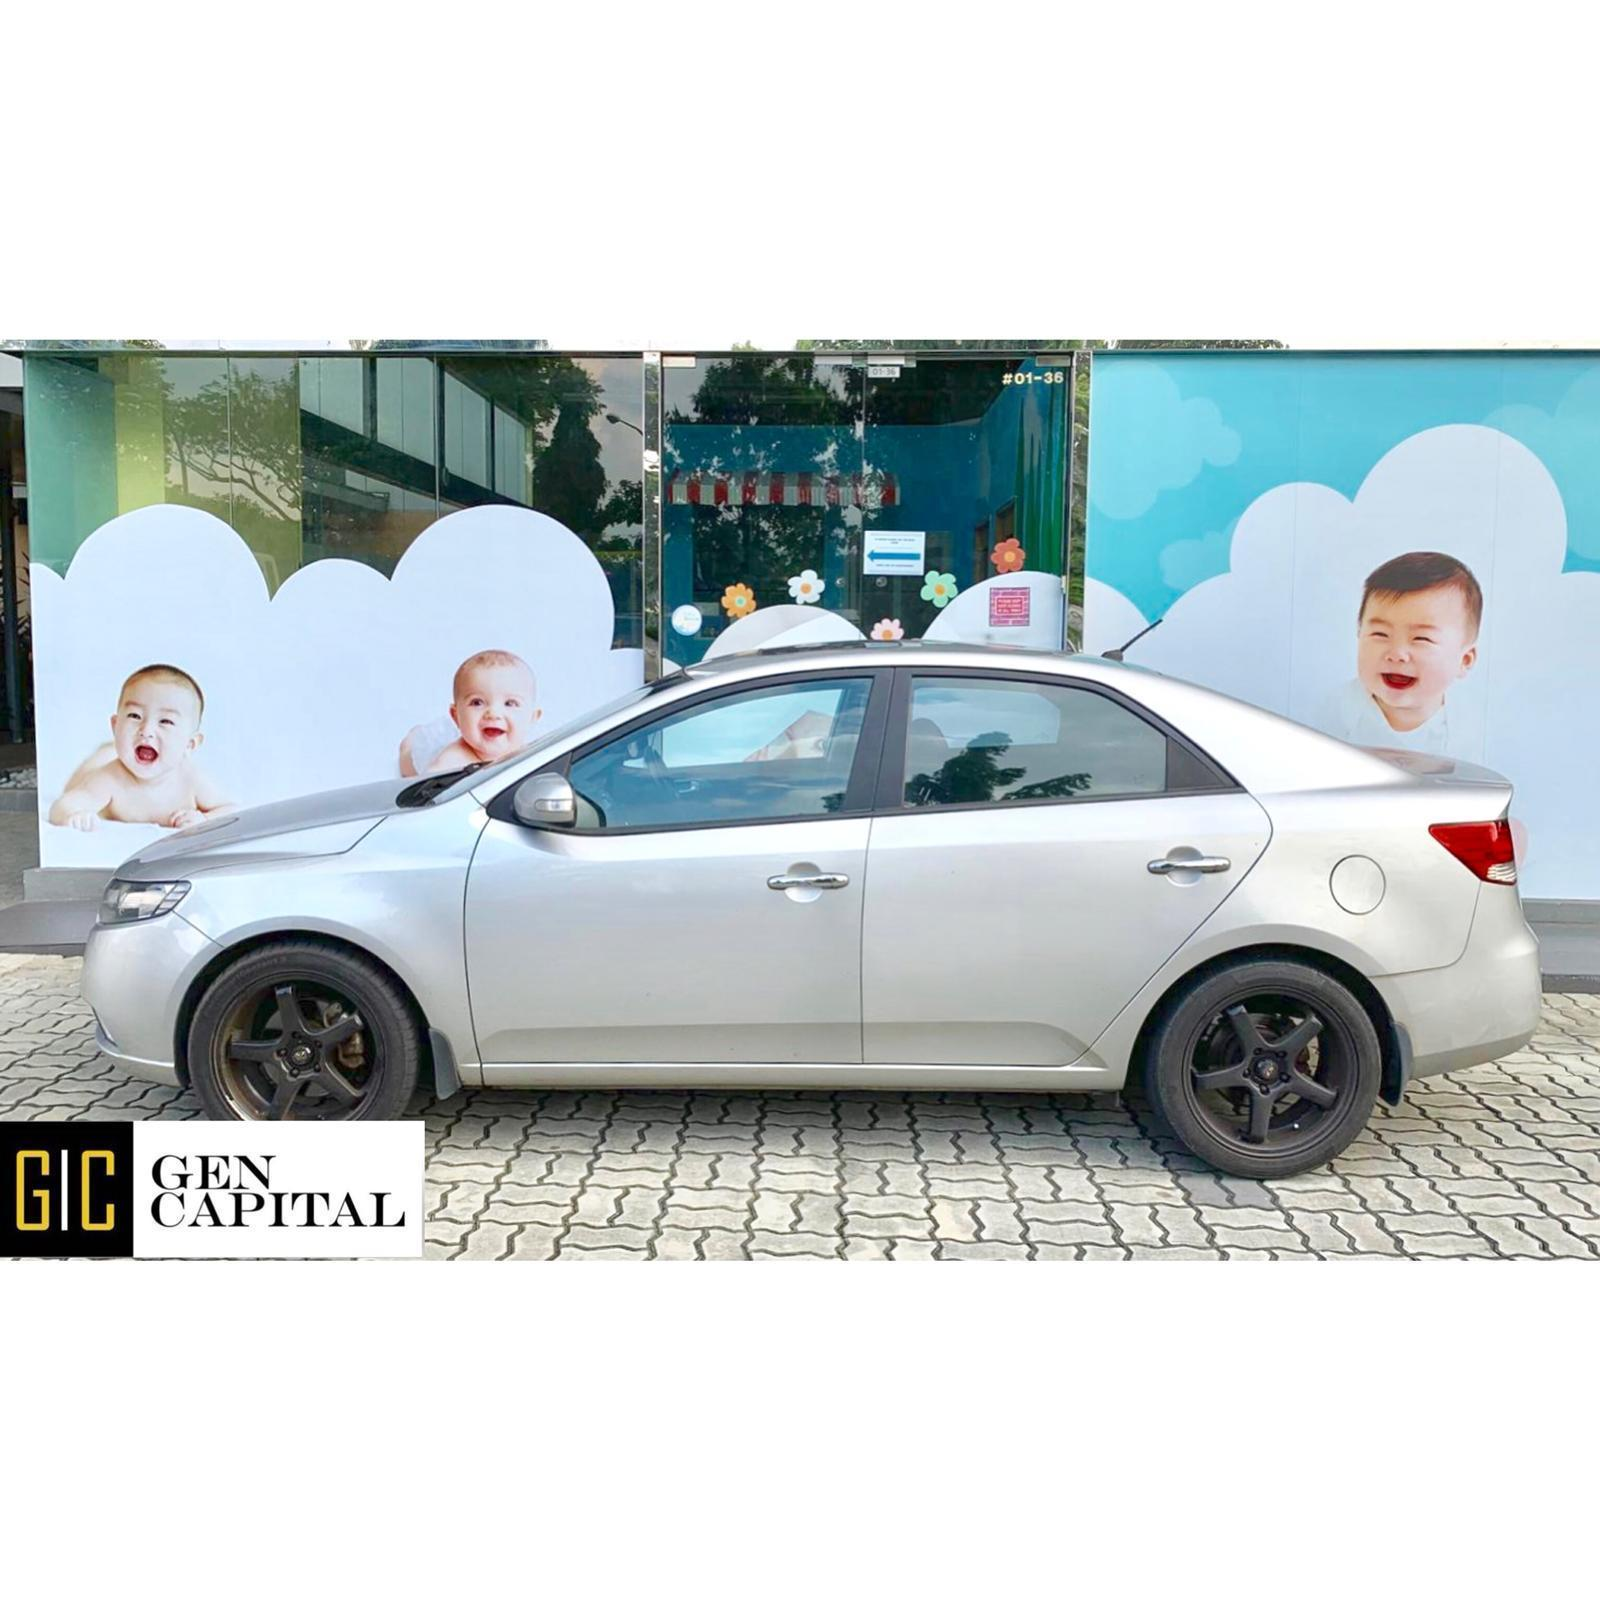 Kia Cerato Forte 2.0A • Lowest rental rates, excellent condition!